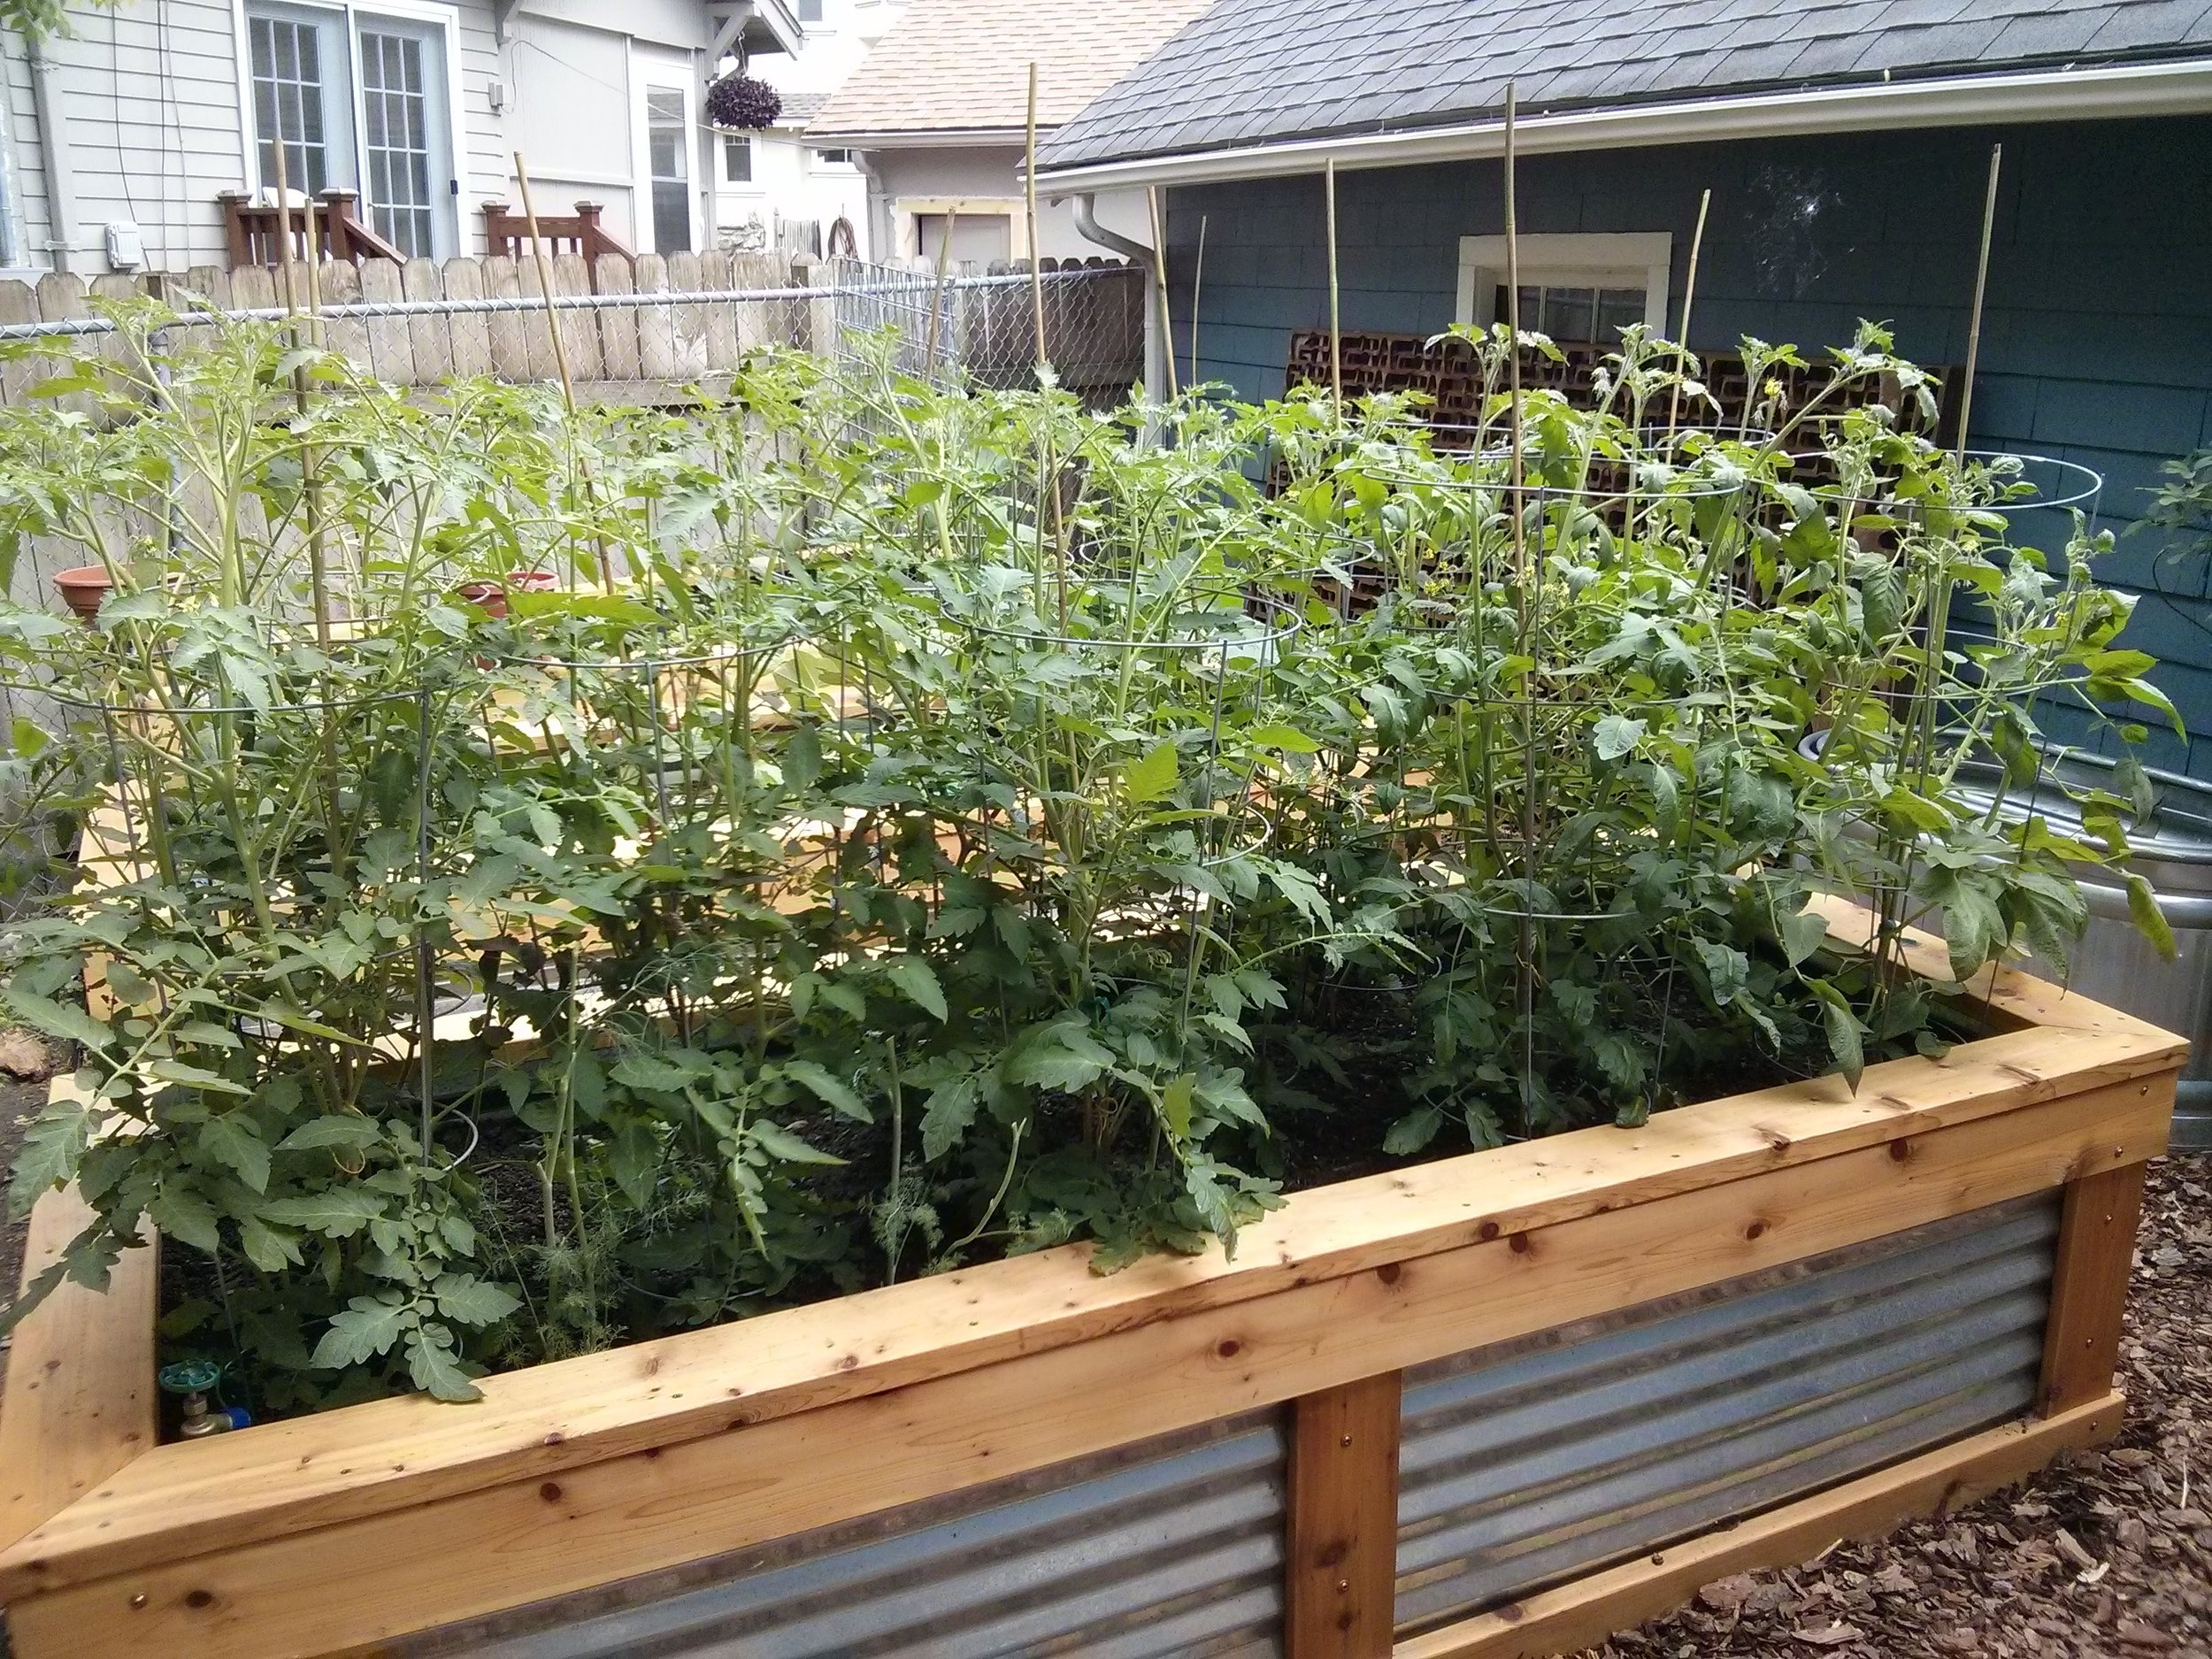 Vegetable Garden Consulting and Install - We can assist you in selecting which plants will work best for your space, your lighting and your lifestyle needs. We can also help you get your garden planted for spring.